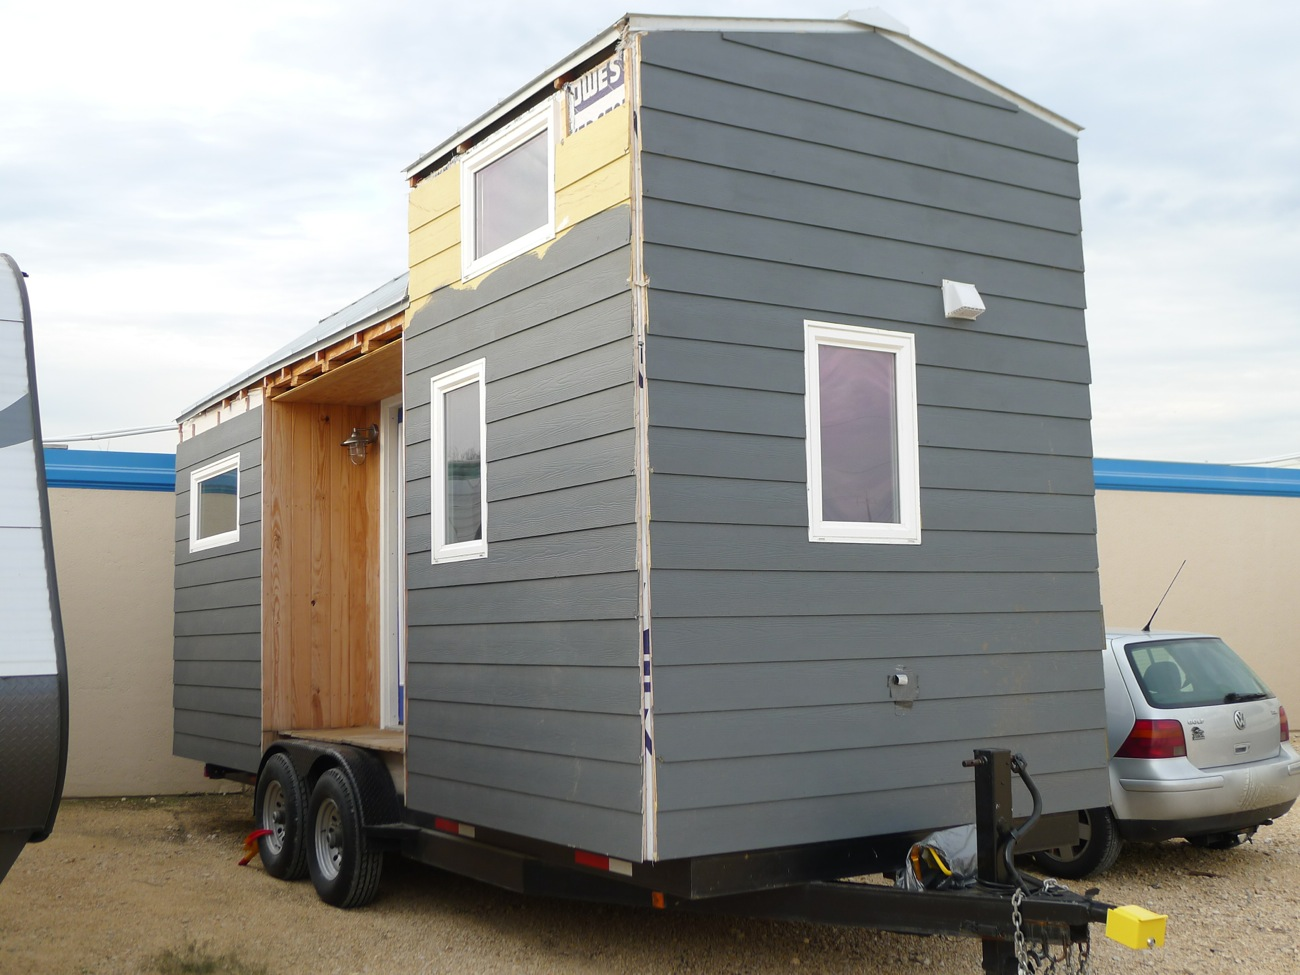 Tiny houses on trailers for sale - San Antonio Tiny House For Sale 06